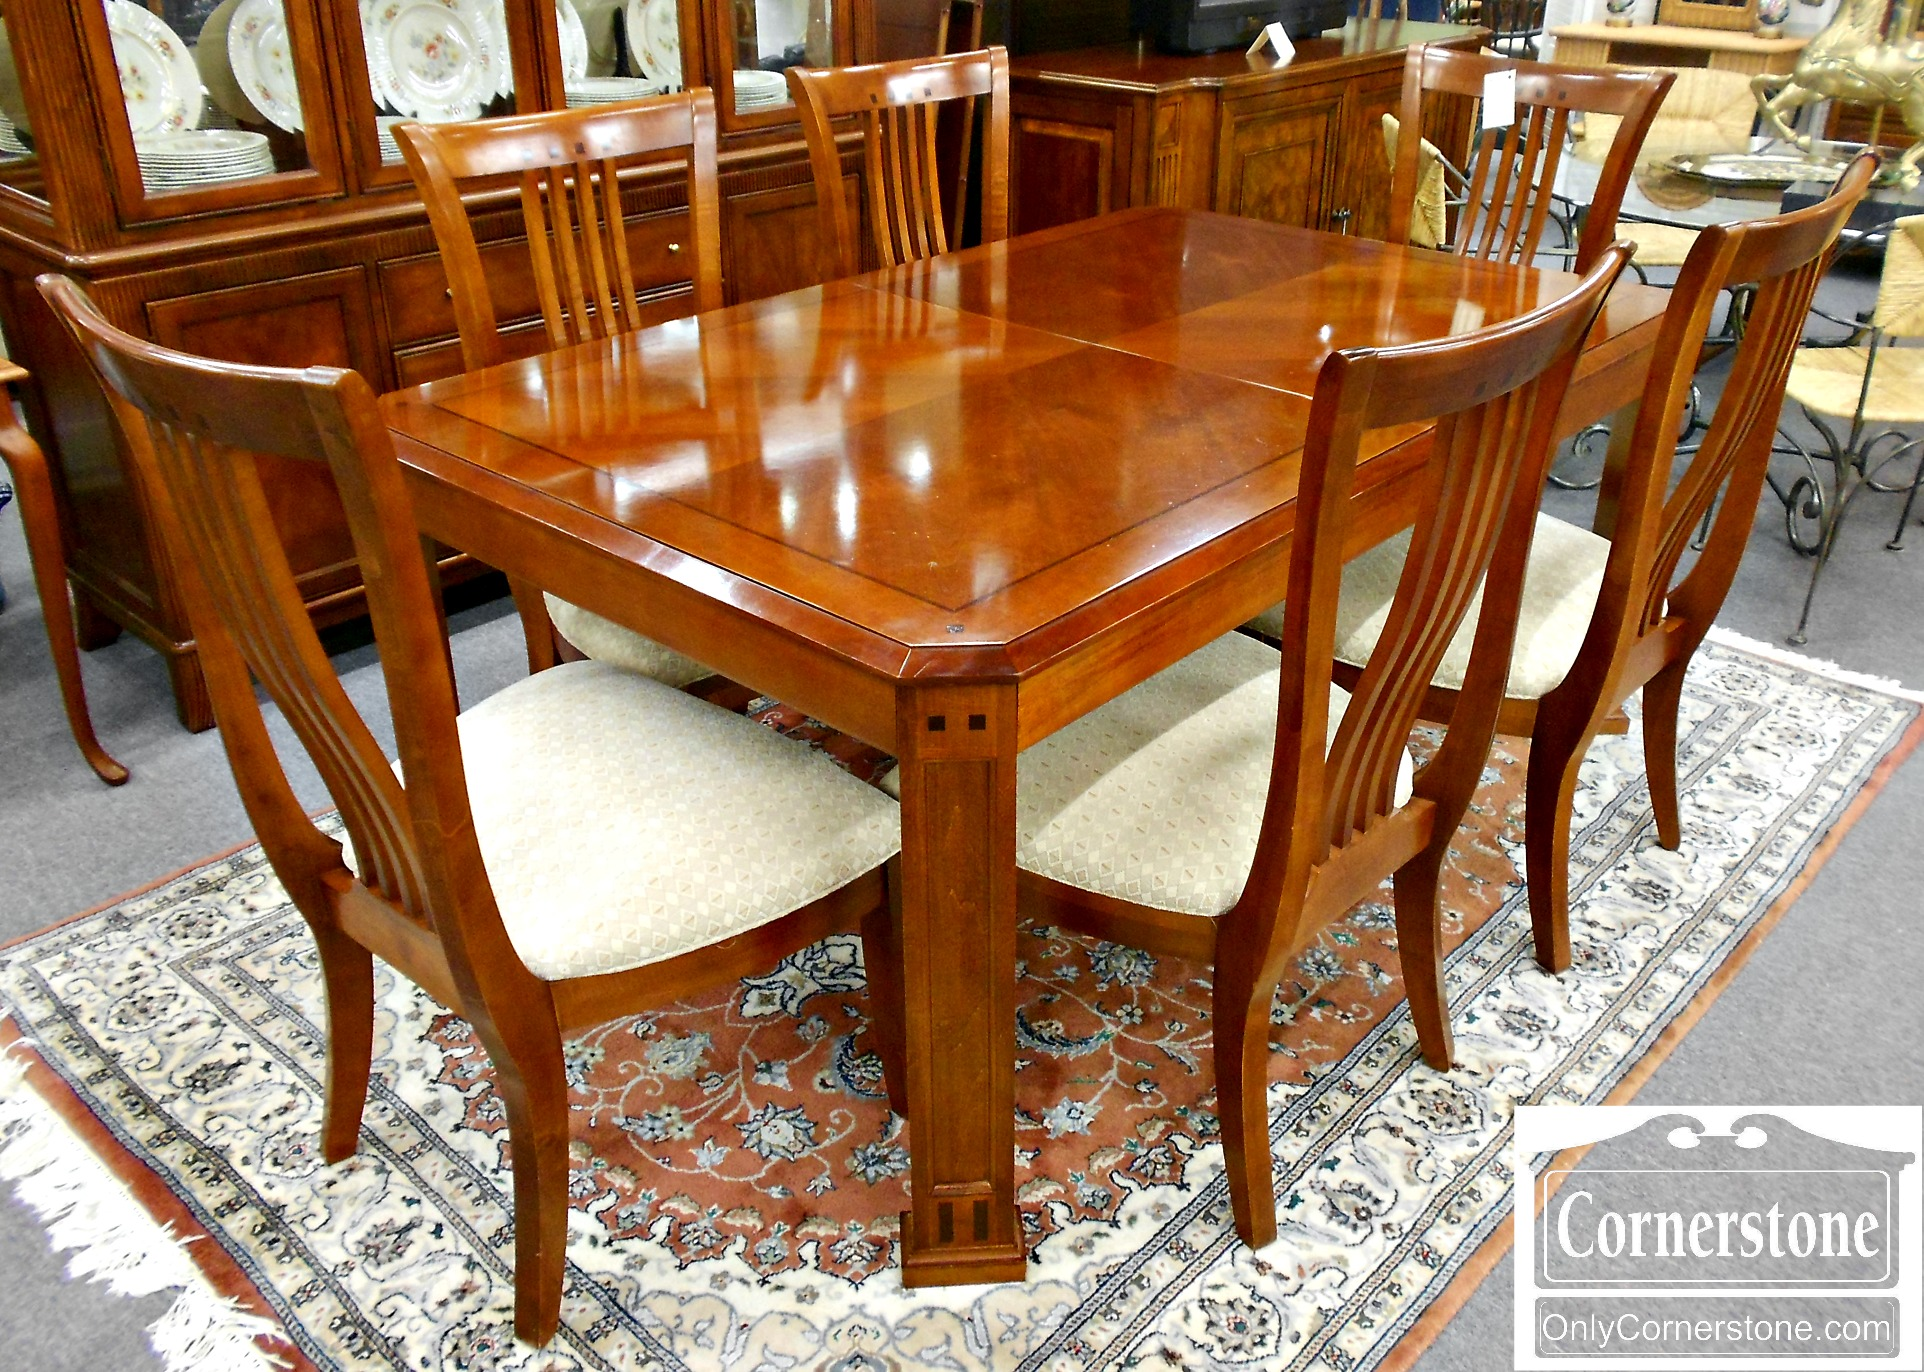 5670-819 Thomasville Cherry Table with 2 Leaves and 6 Chairs